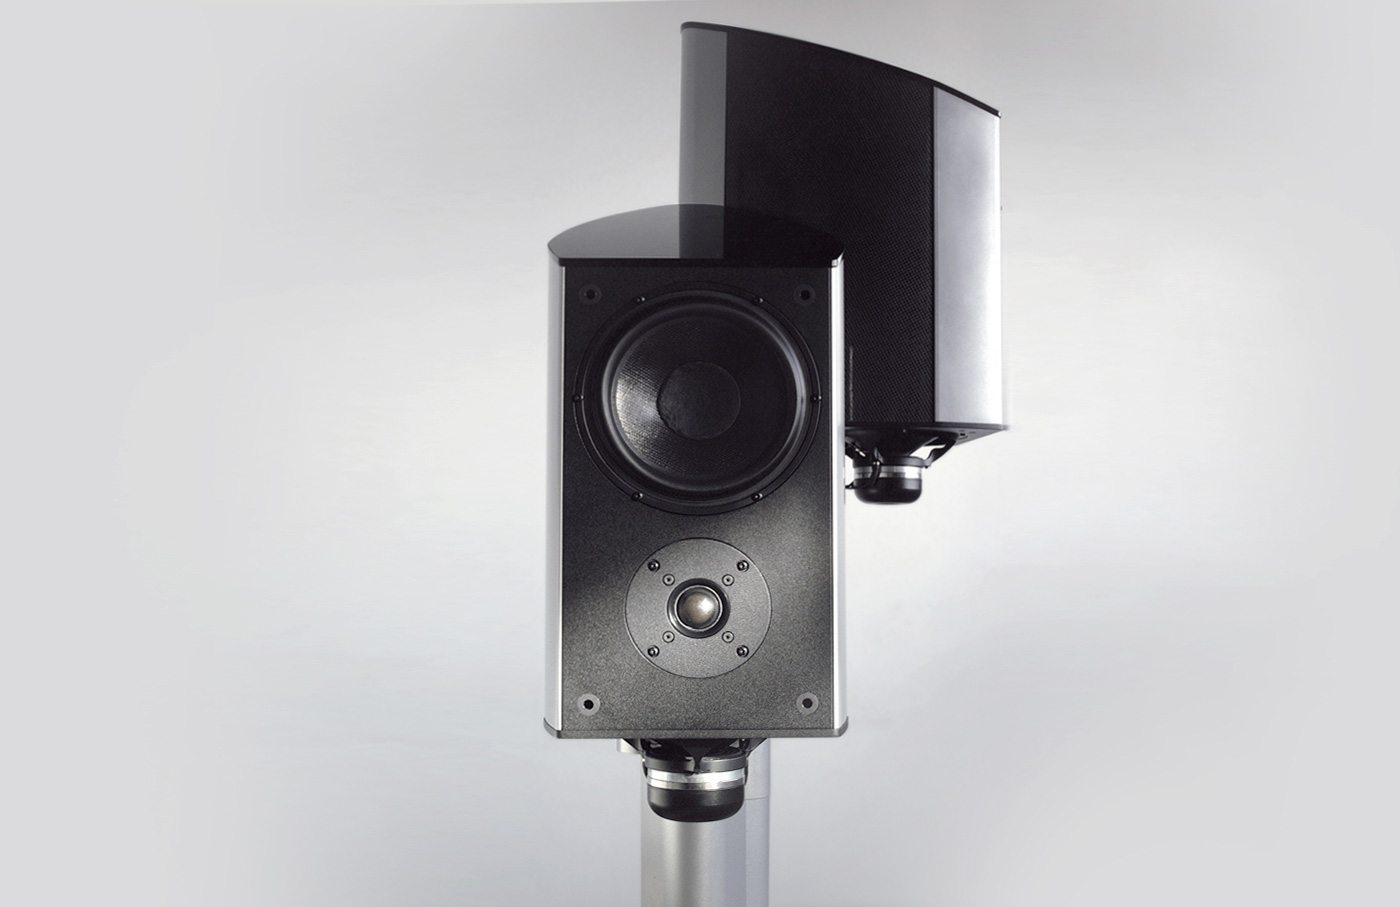 The Wilson Benesch Discovery: the first product in the Odyssey Range